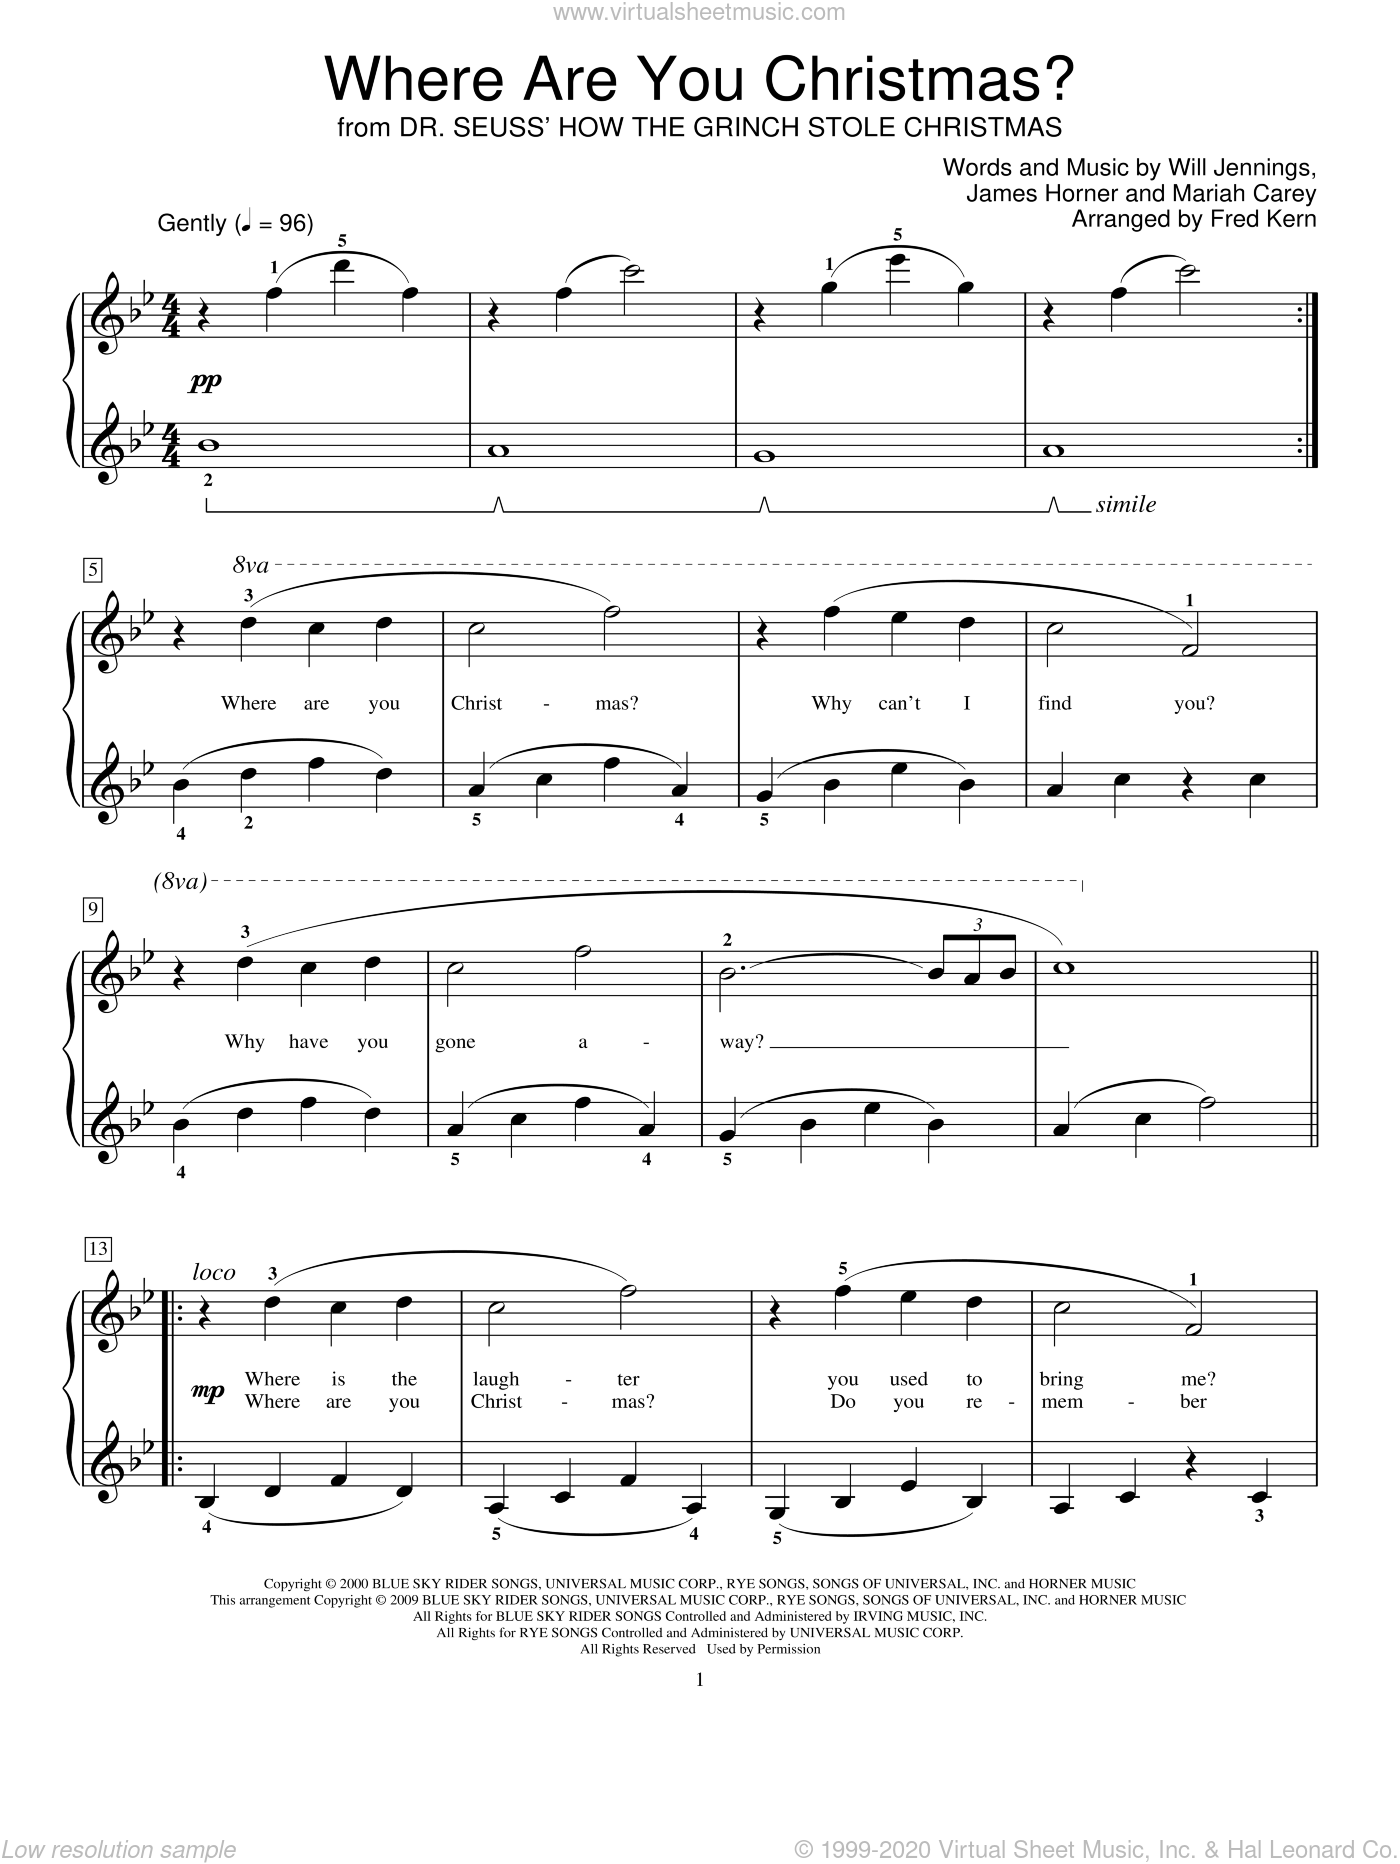 Where Are You Christmas? (arr. Fred Kern) (from How The Grinch Stole Christmas) sheet music for piano solo (elementary) by Faith Hill, Fred Kern, Miscellaneous, James Horner, Mariah Carey and Will Jennings, beginner piano (elementary)